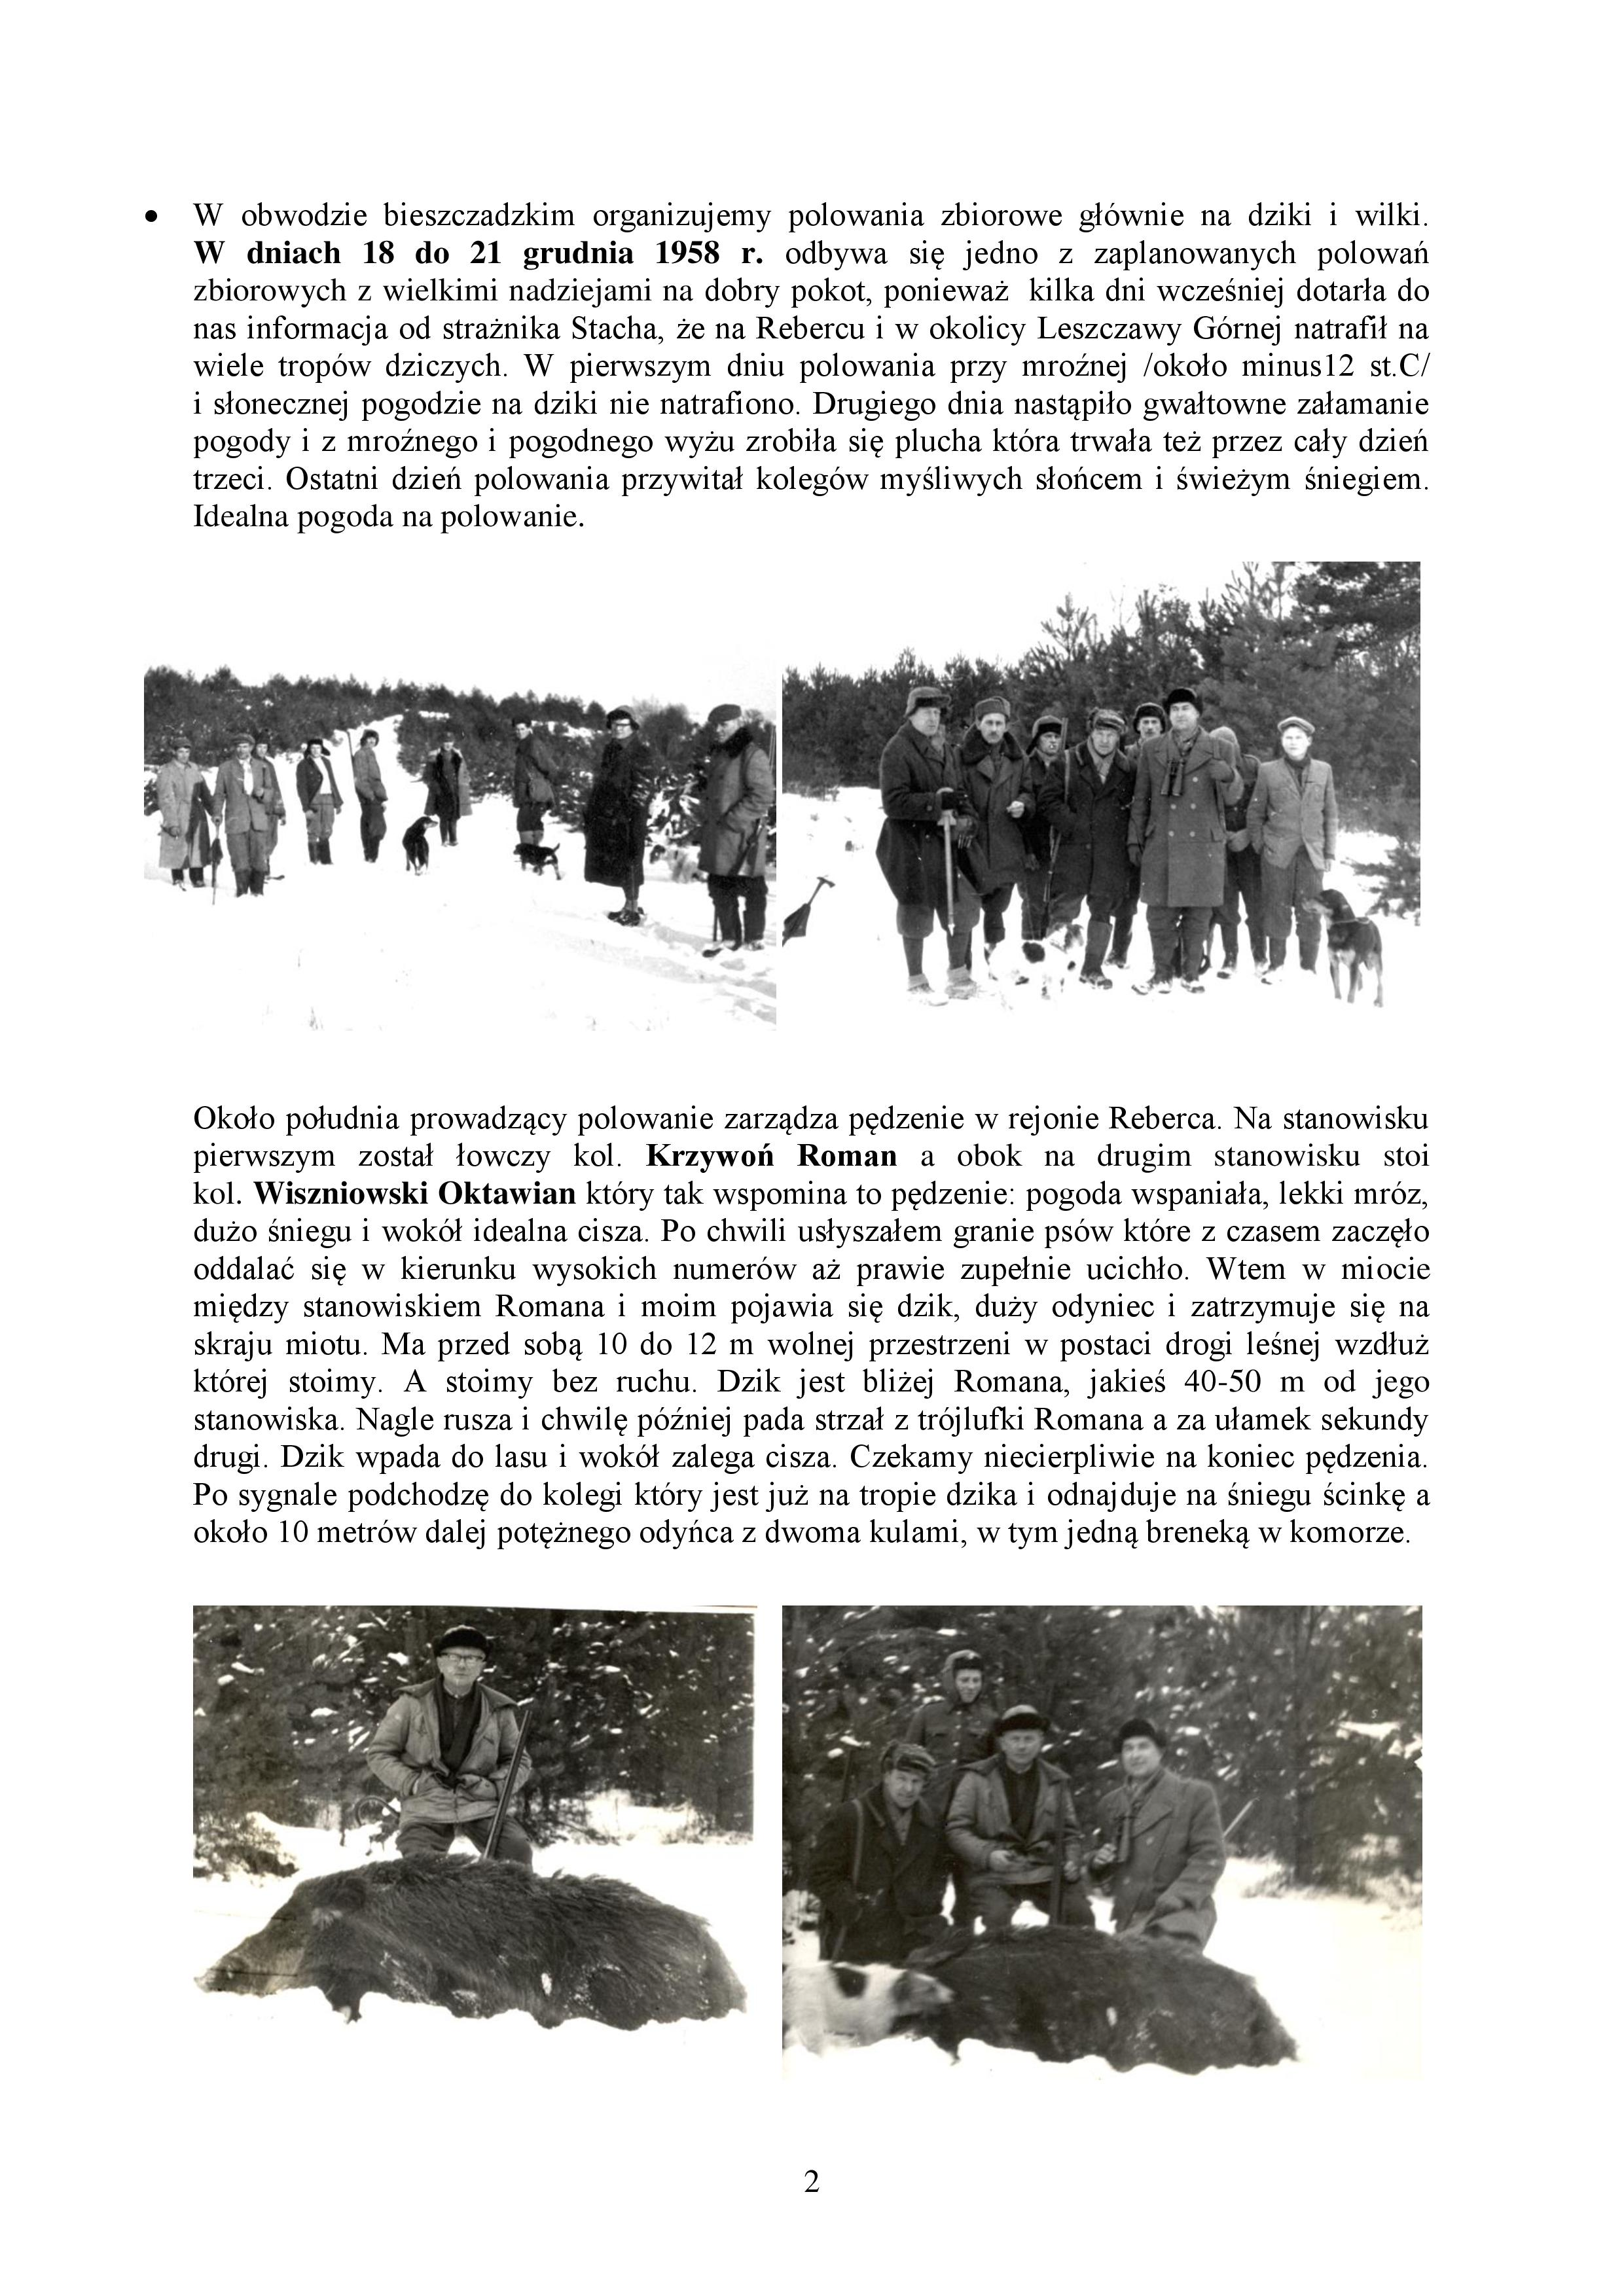 ROK 1958-page-002